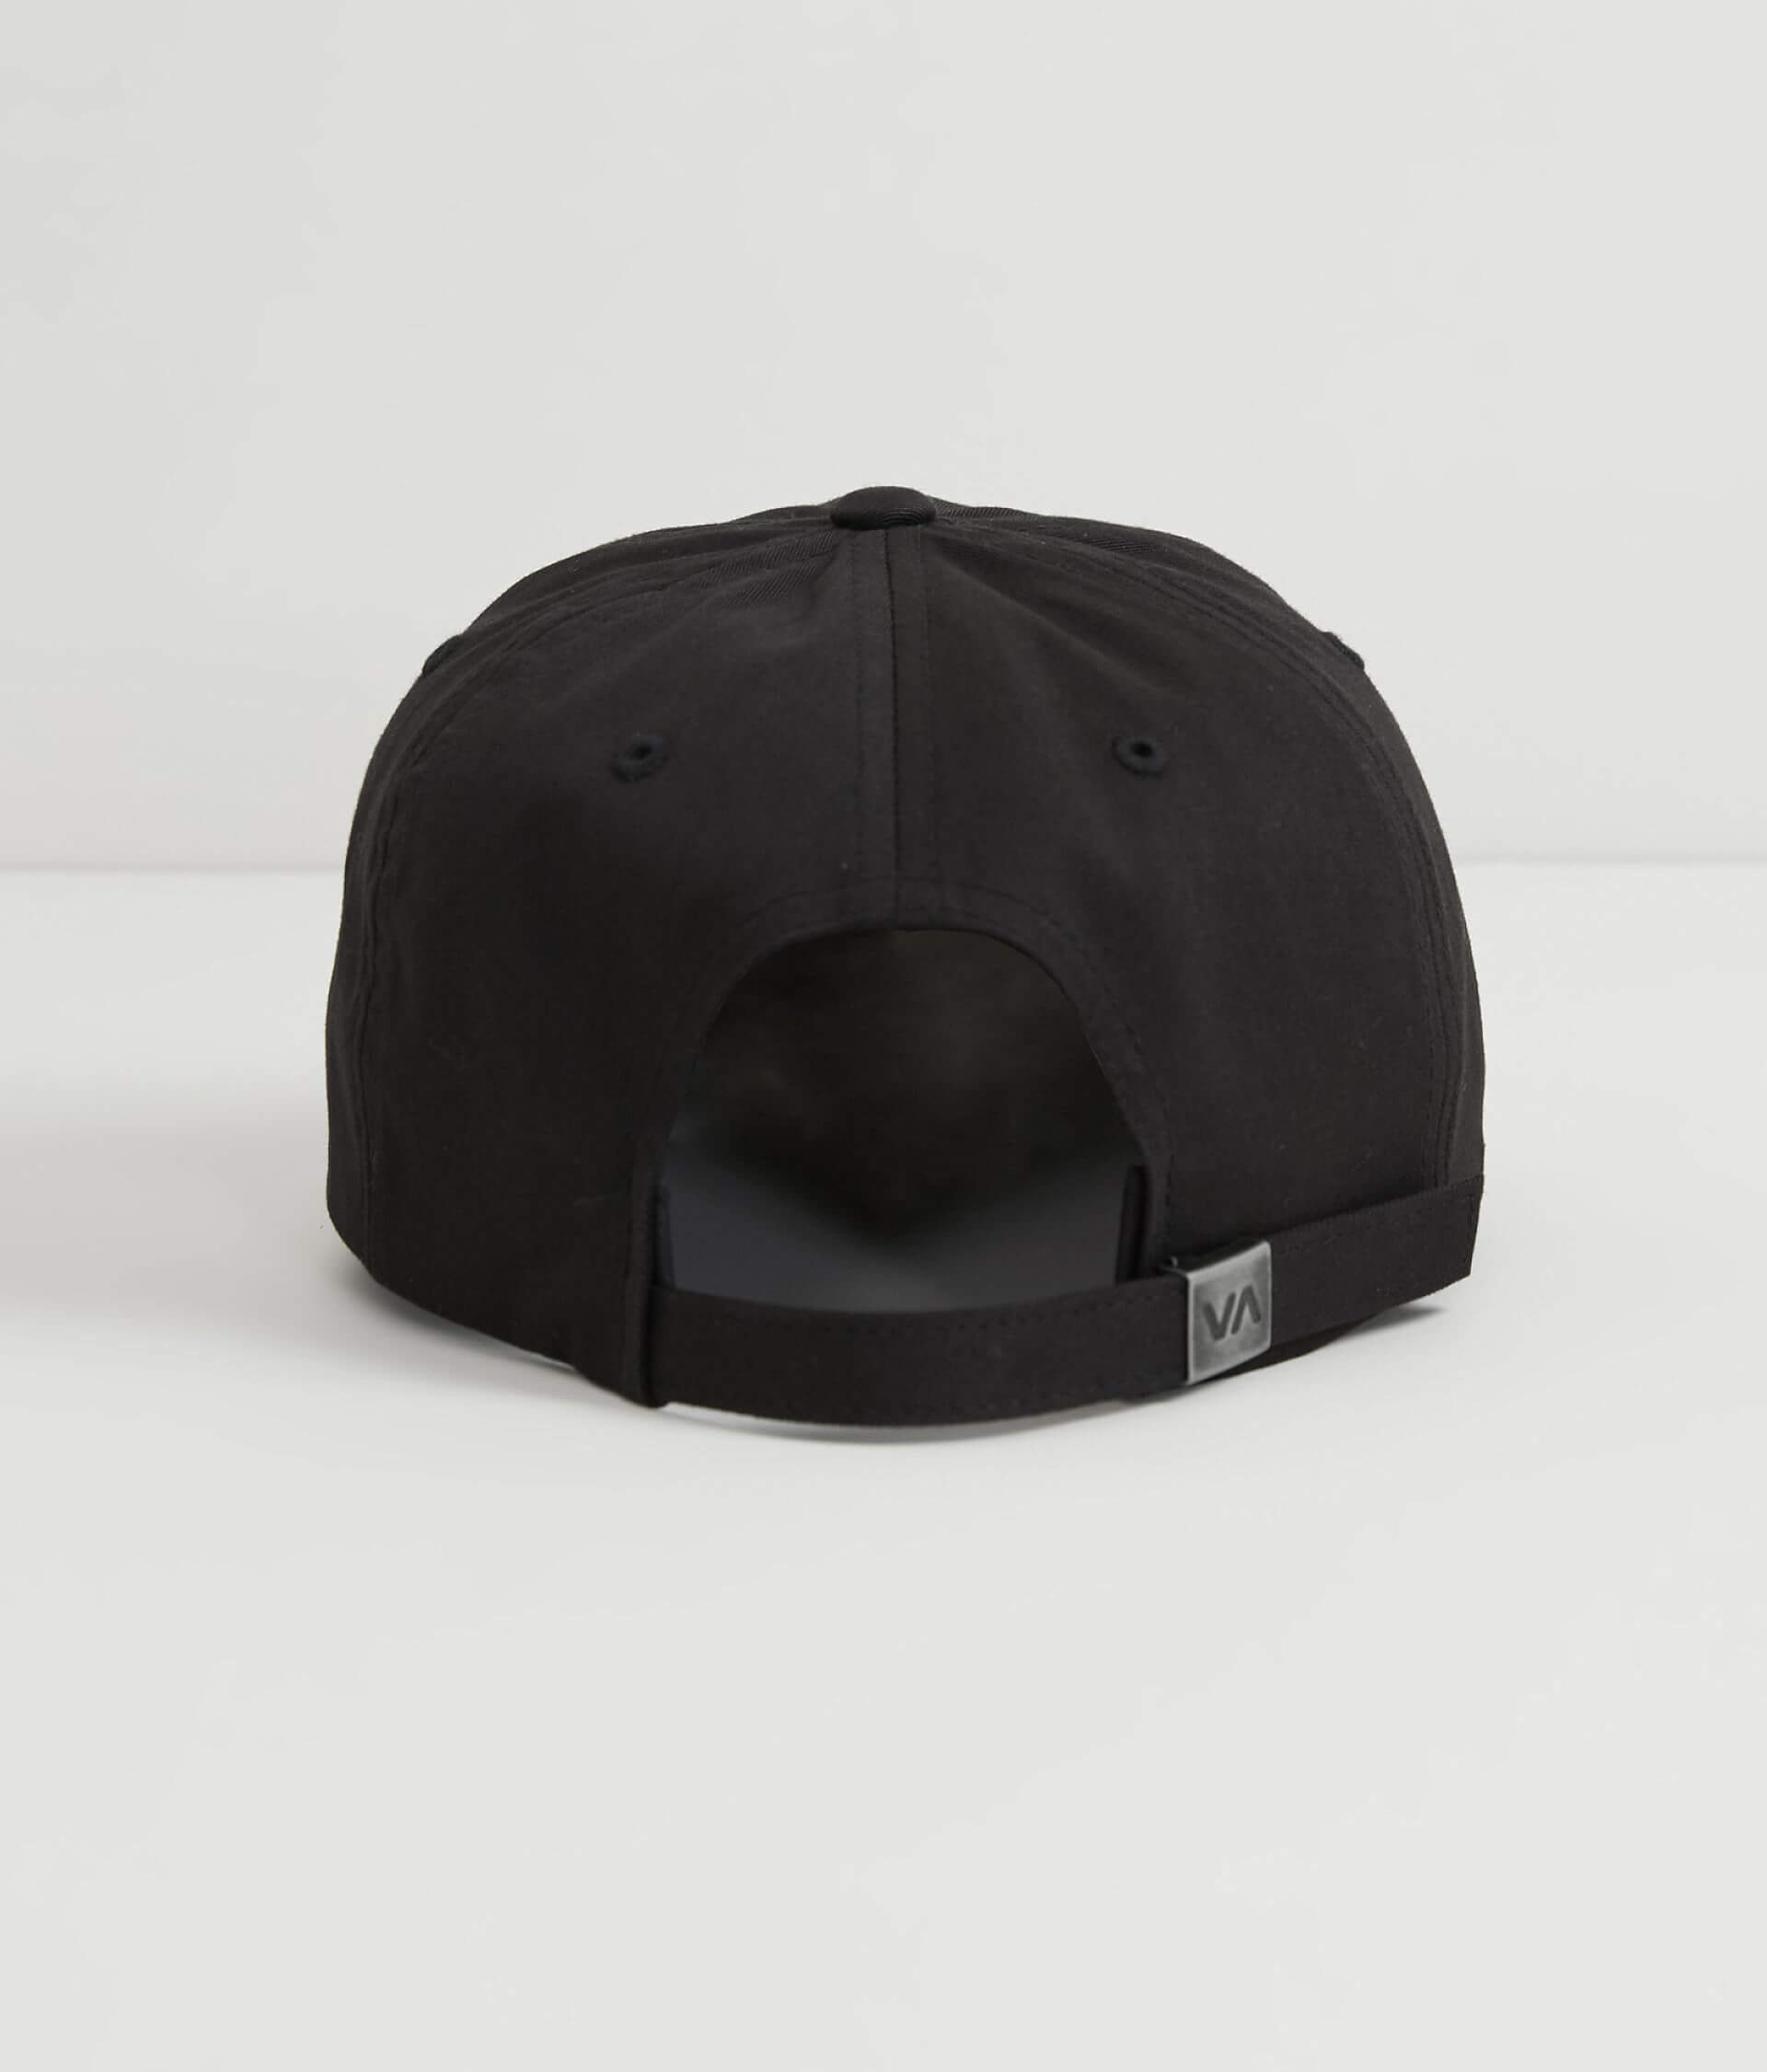 de2fdb0f RVCA Redmond Hat - Men's Hats in Black | Buckle